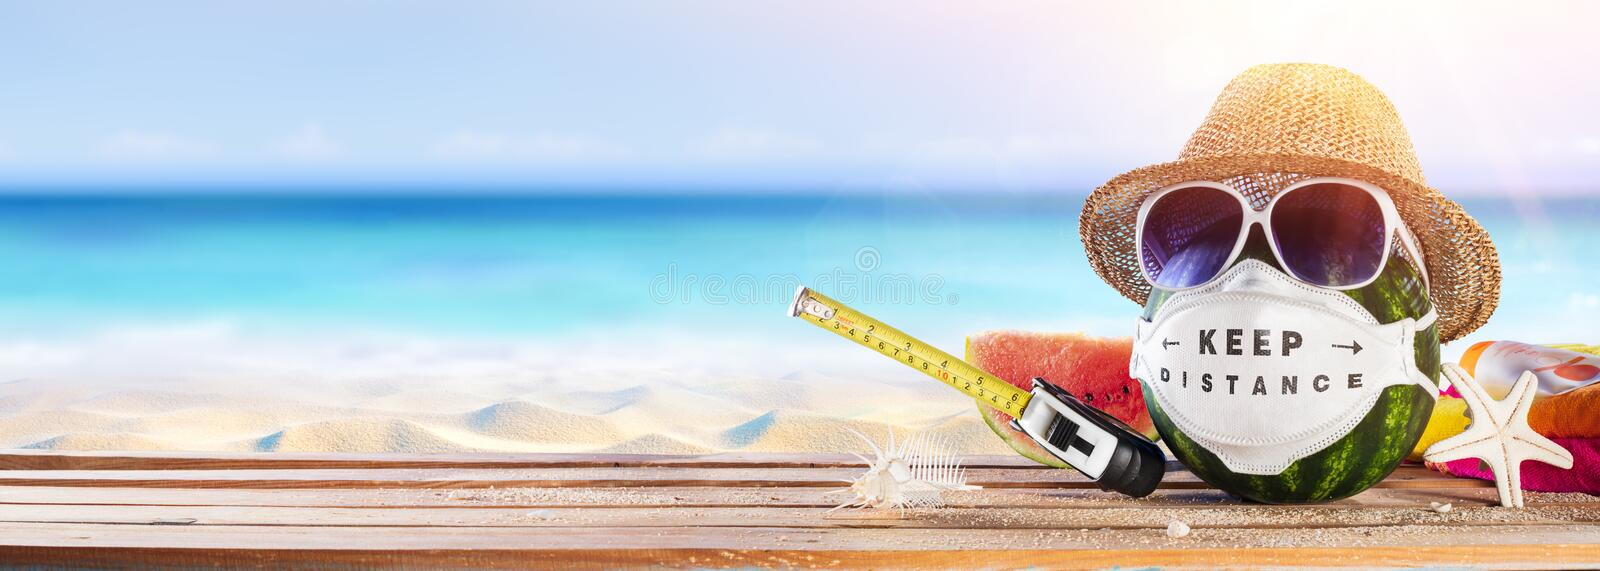 Watermelon Wearing Protective Mask - Keep Social Distance During COVID-19 Pandemic In Beach royalty free stock images